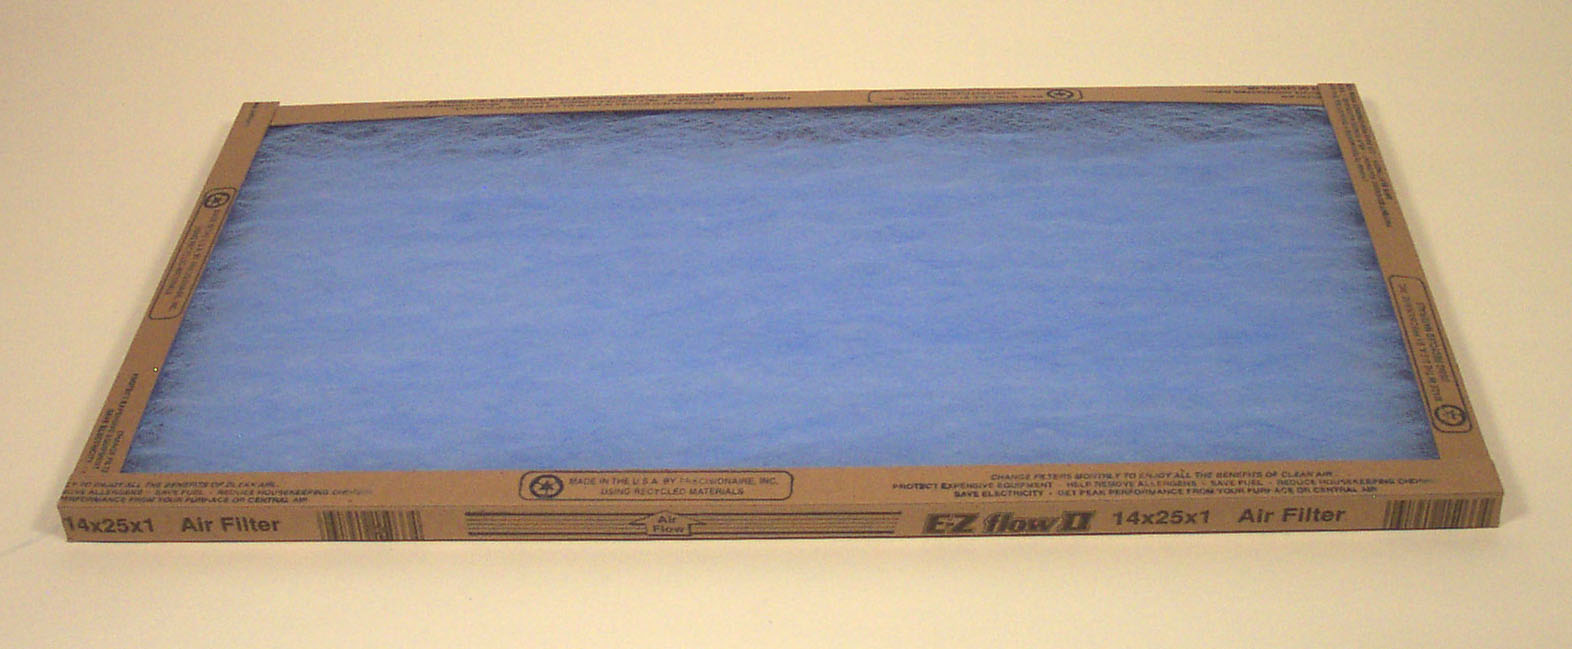 **INVENTORY CLOSEOUT** Fiberglass Air Filter 14x25x1  (Case of 6) SHIPPING TO U.S. $1.99